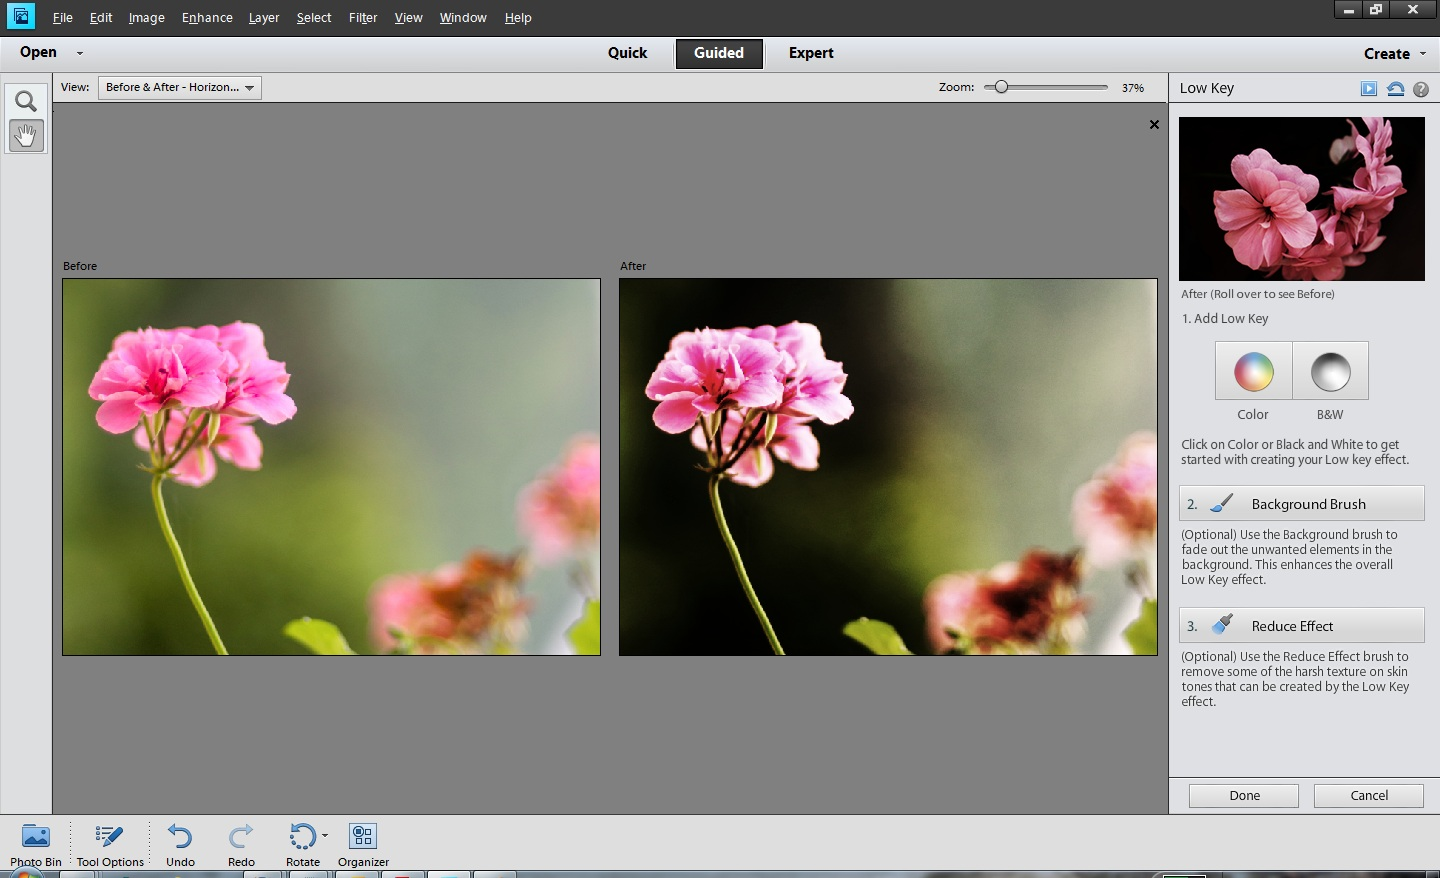 How to use Low Key Guided Edit in Adobe Photoshop Elements